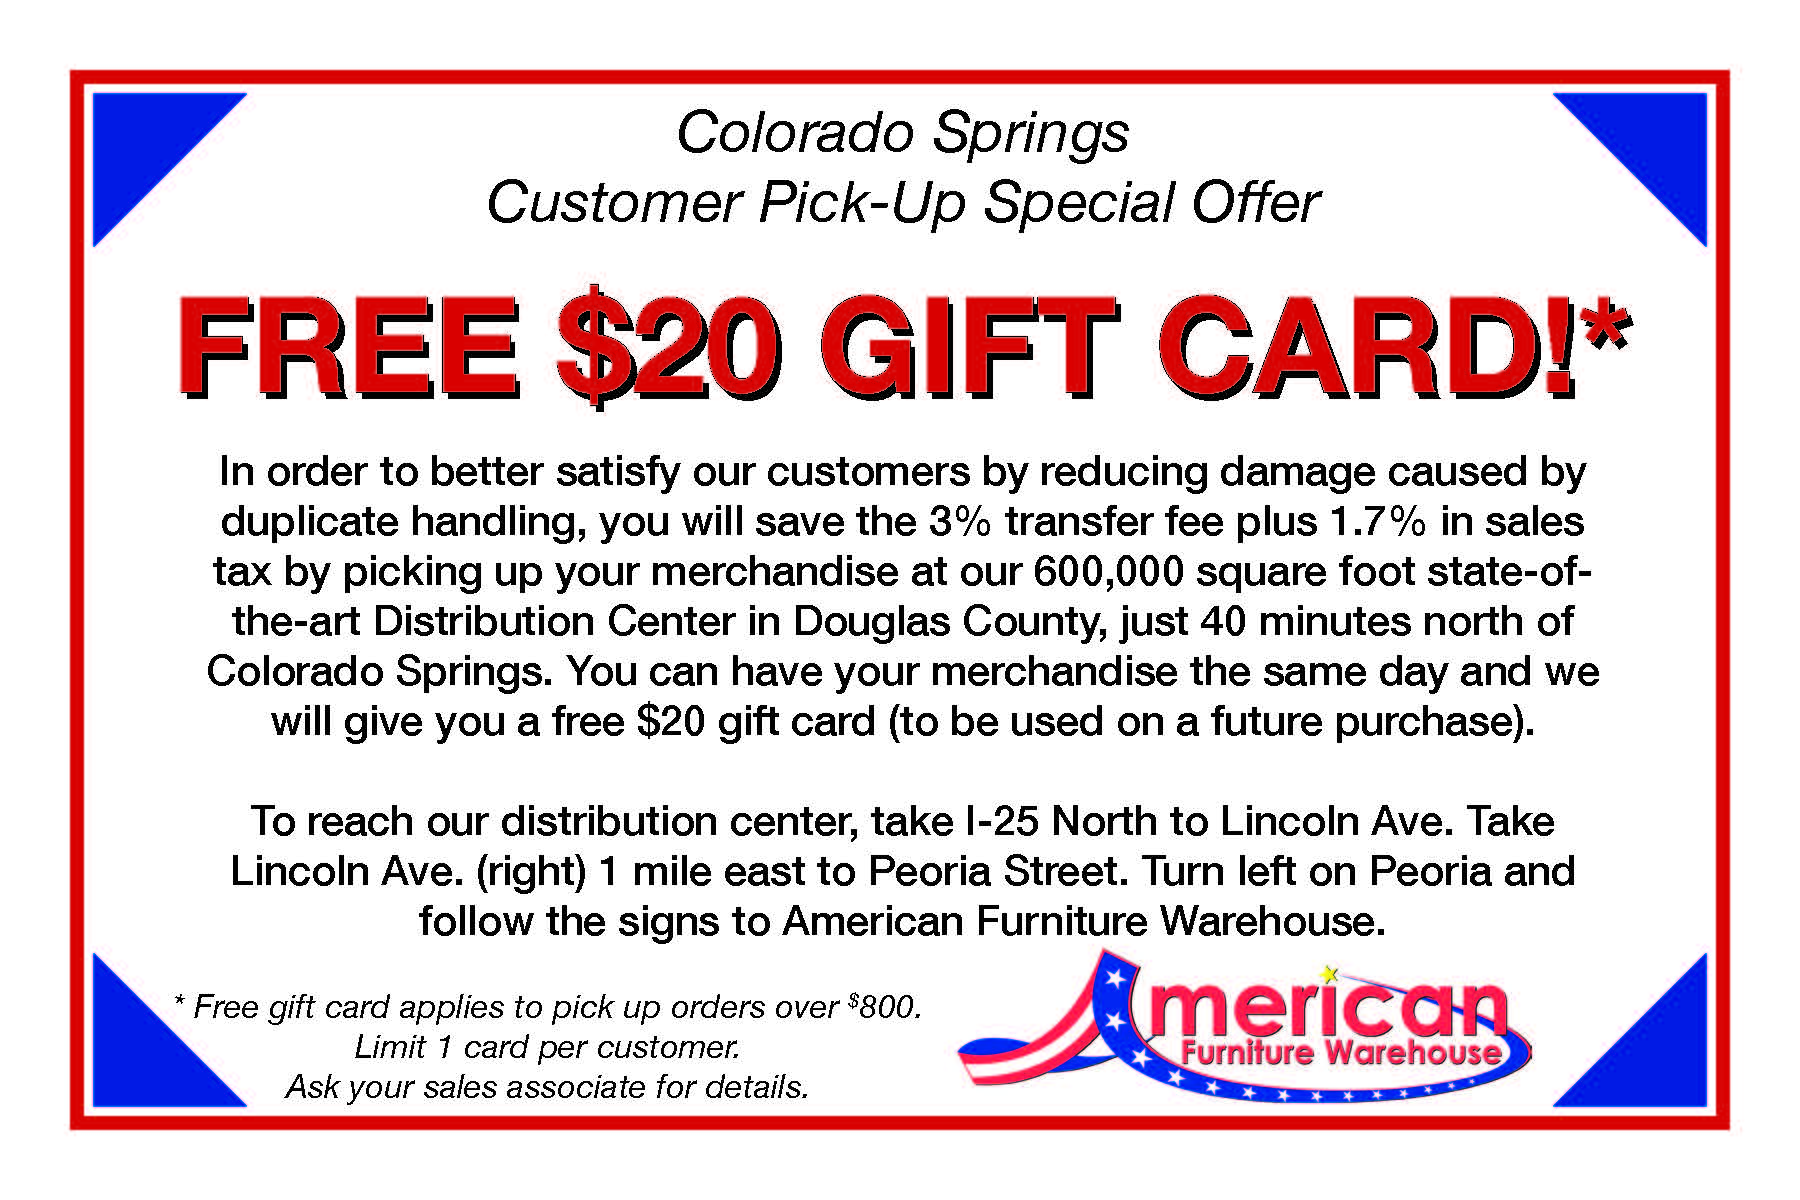 coupon magazines colorado springs buffalo wagon albany ny coupon